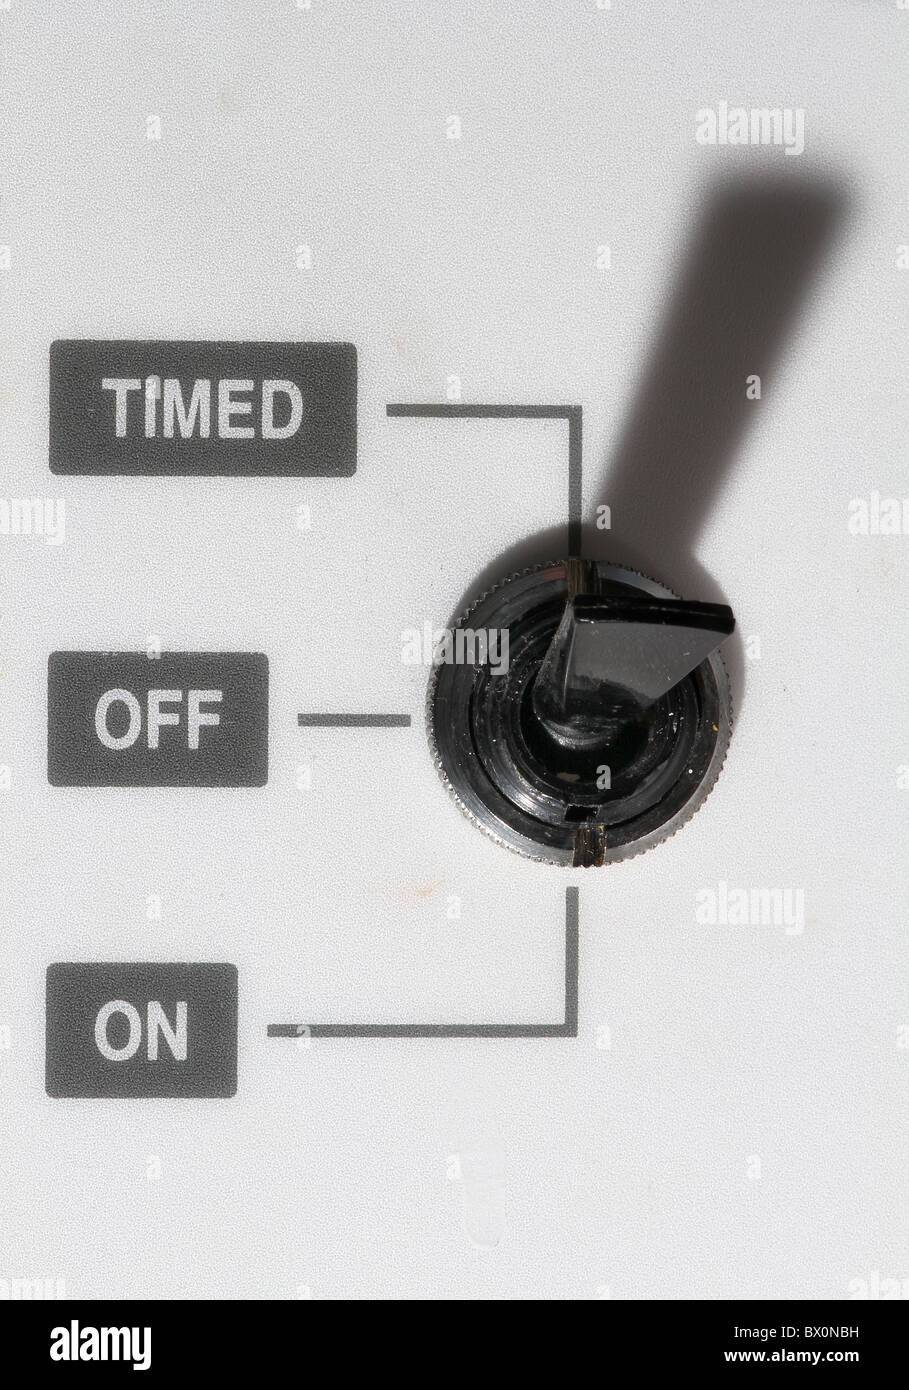 Toggle switch on heating control system with timed, on and off settings. - Stock Image